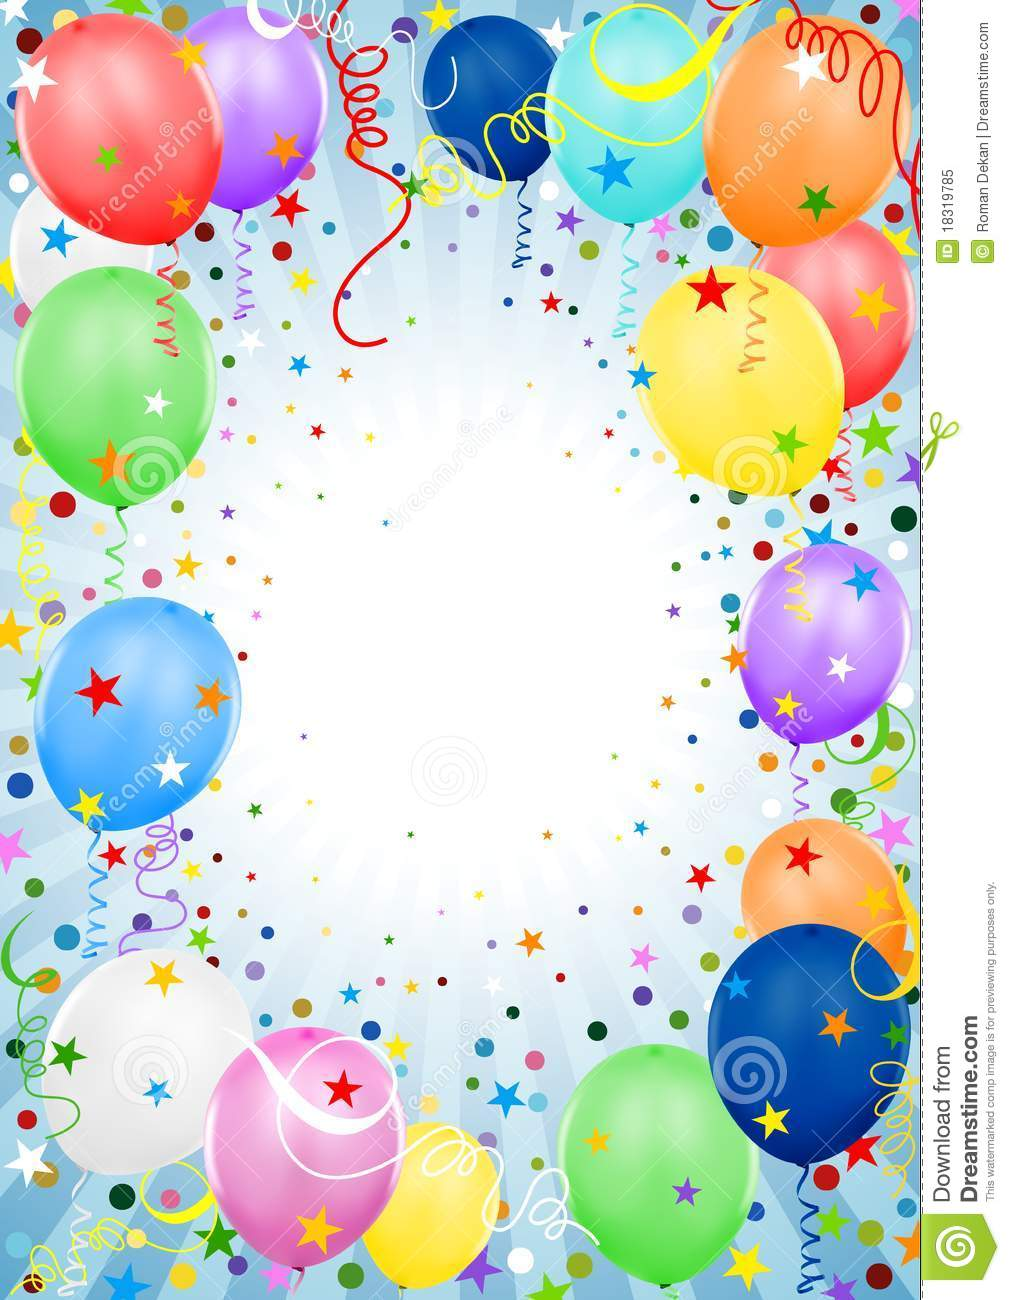 Party Balloons Royalty Free Stock Photo - Image: 18319785